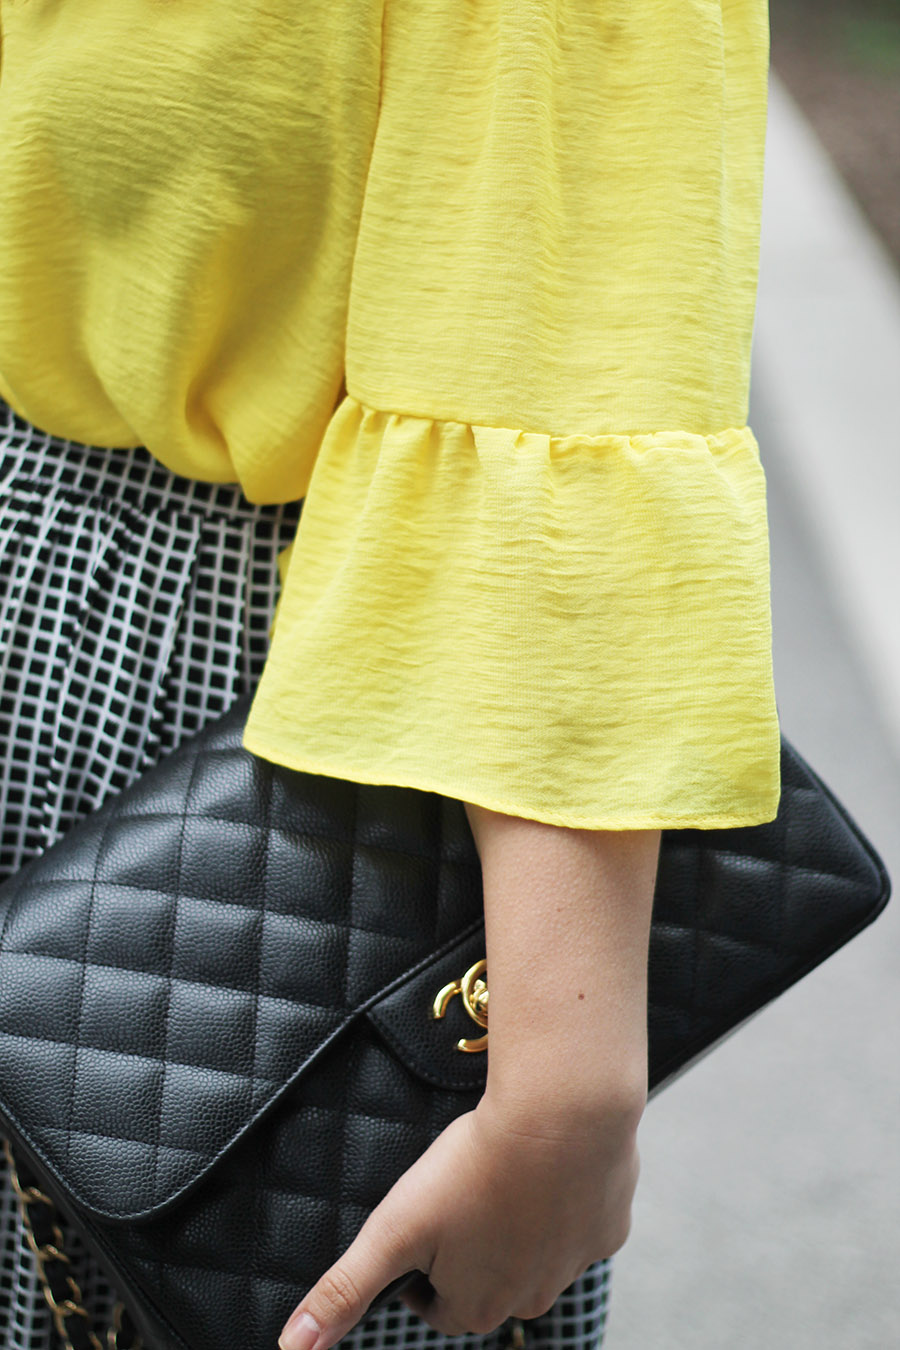 bell-sleeves-fashion-trends-and-chanel-quilted-handbag